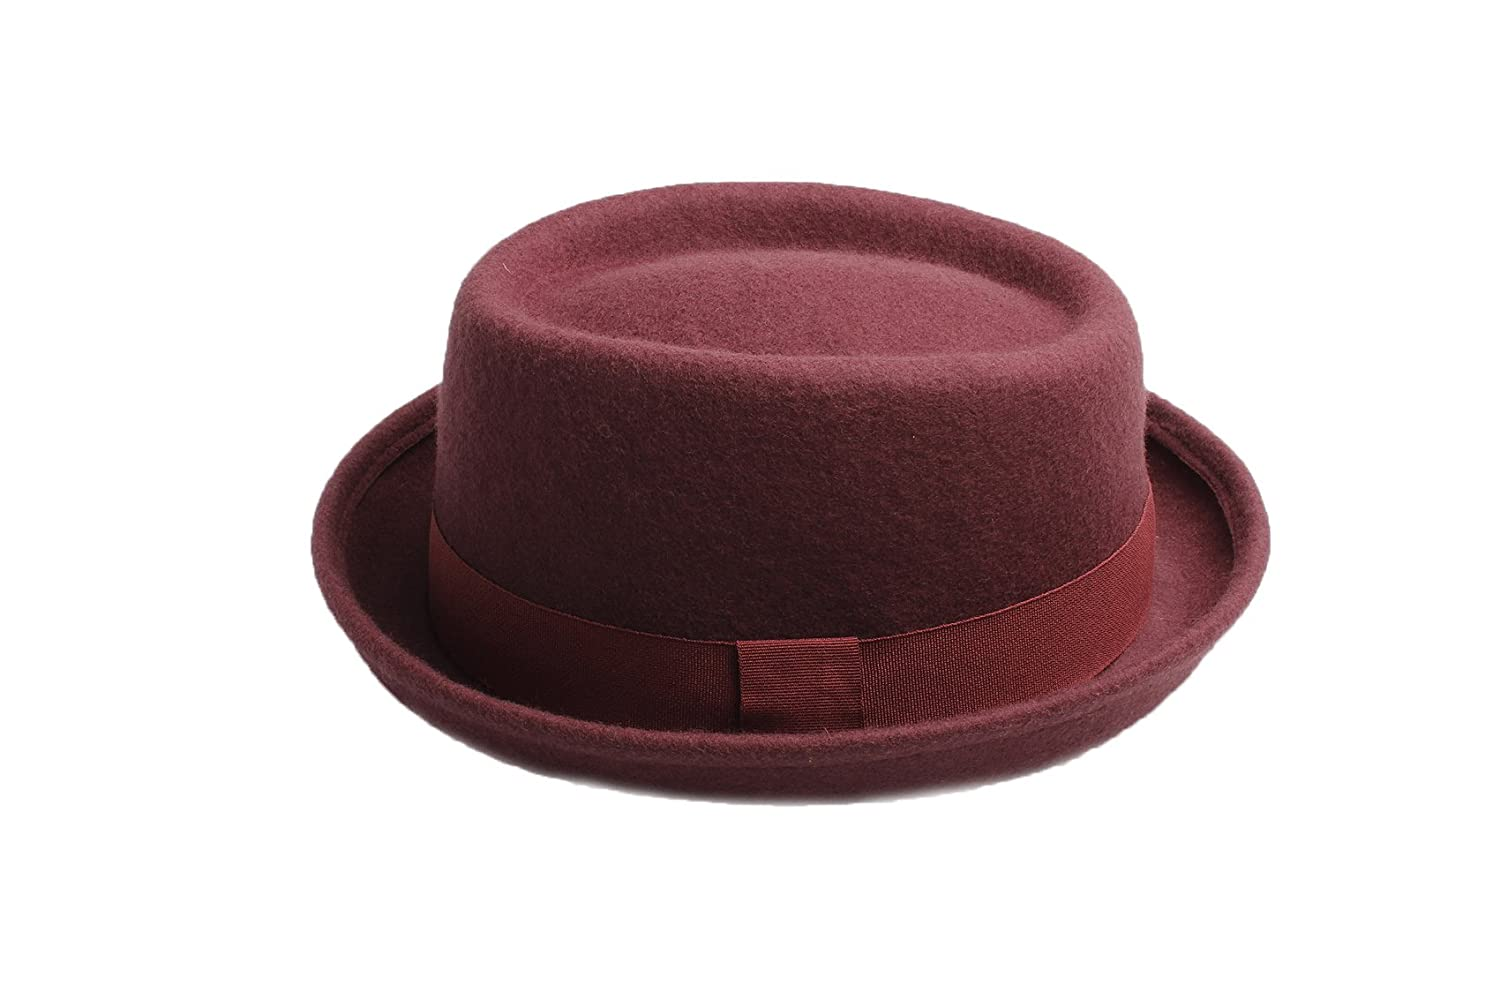 Accessoryo - Cappello Pork pie - Basic - Uomo